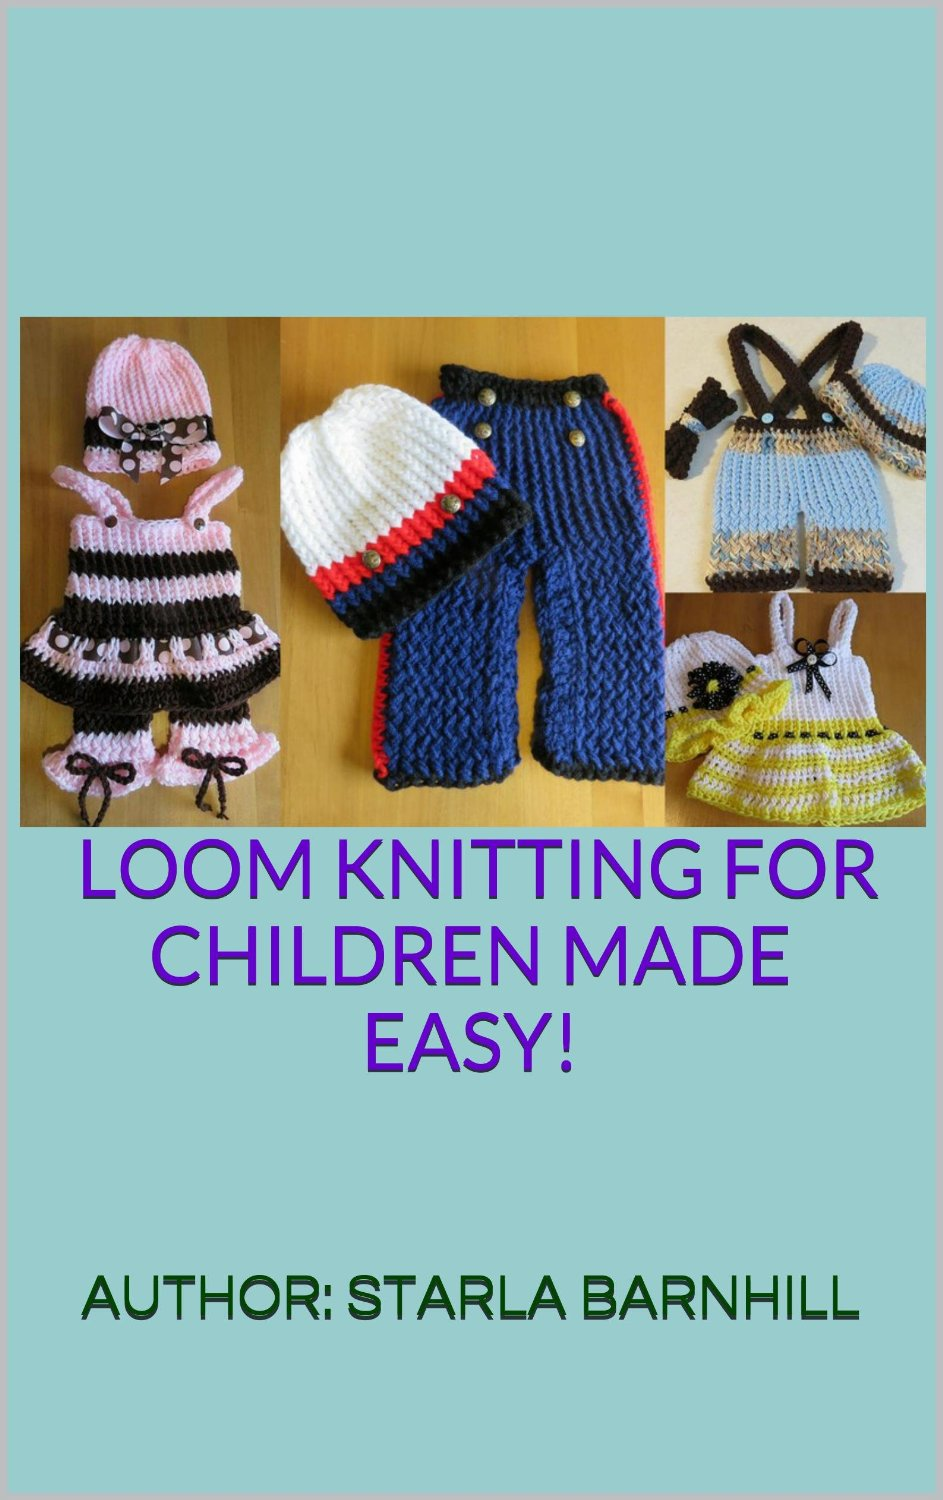 Loom Knitting For Children Made Easy! free download